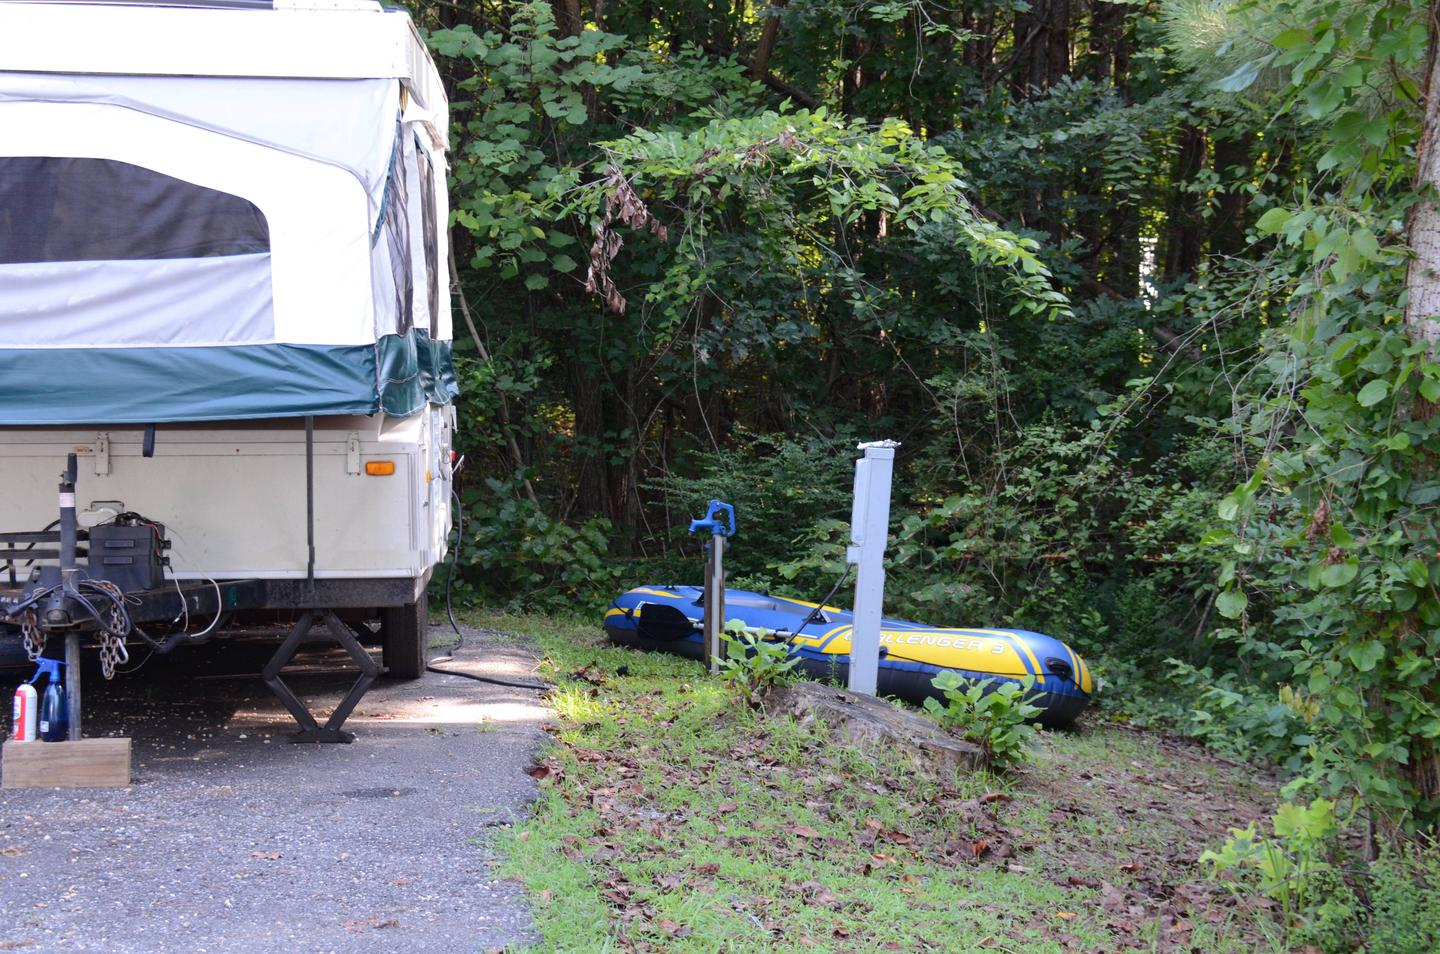 Utilities-side clearance.Payne Campground, campsite 20.